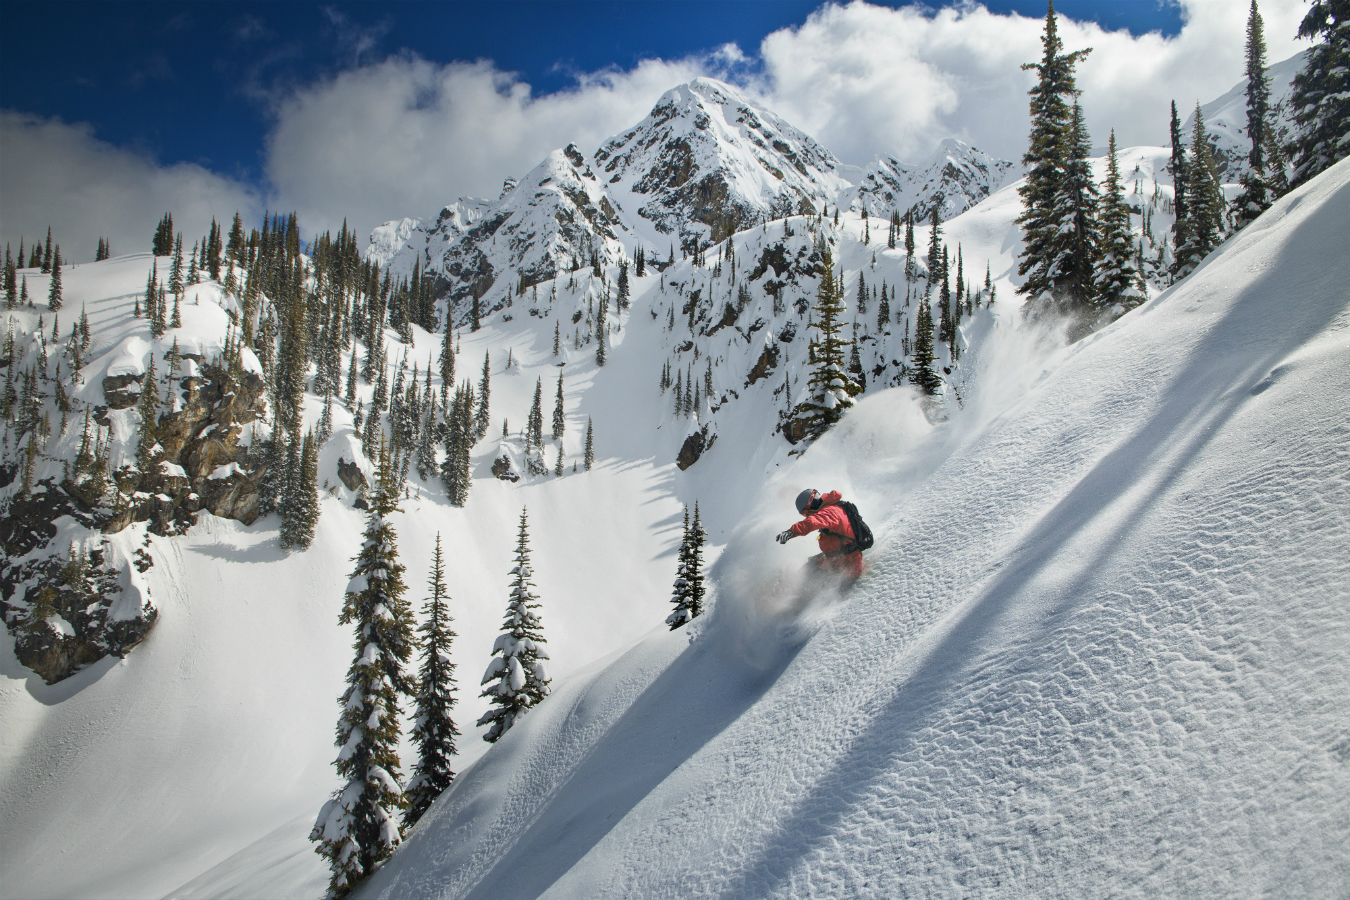 revelstoke mountain resort | montecristo